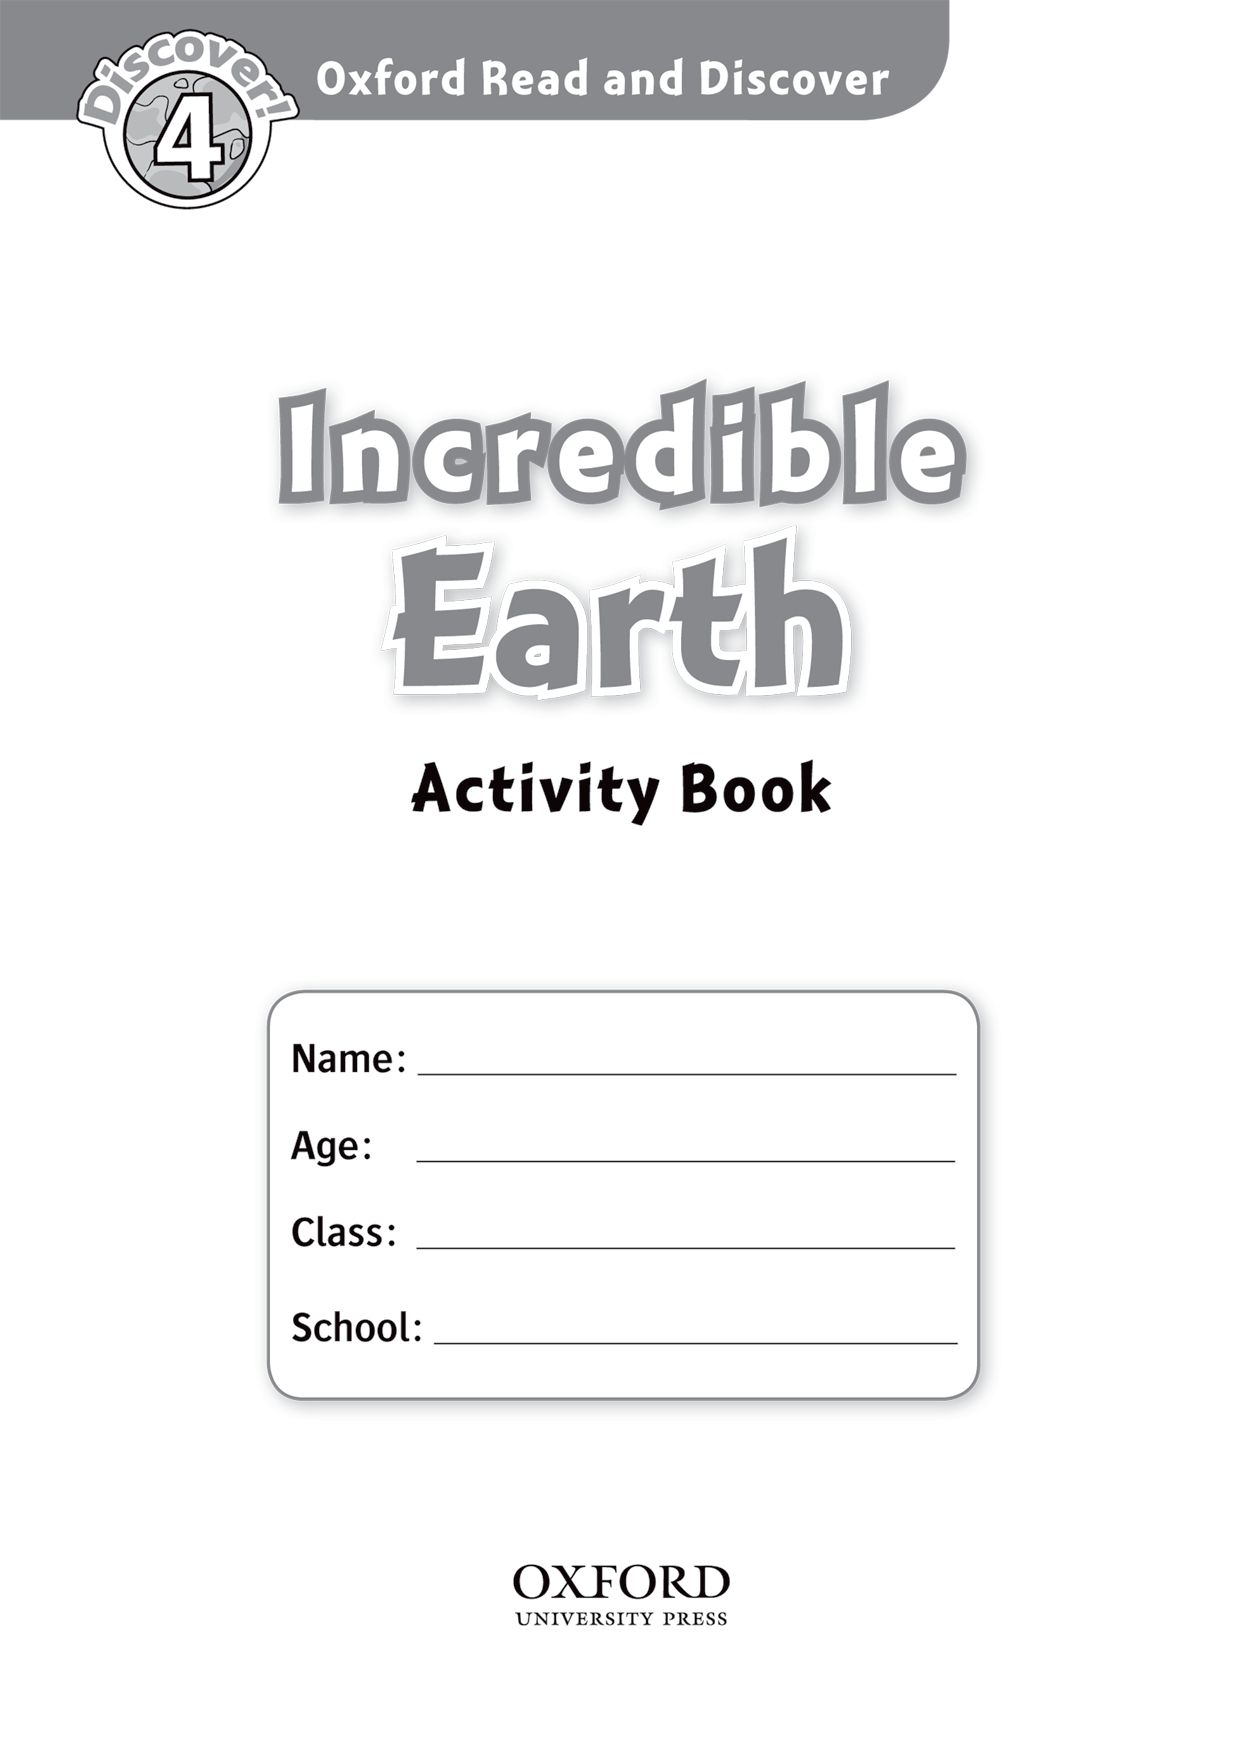 Read and discover 4 INCREDIBLE EARTH AB read and discover 4 incredible earth